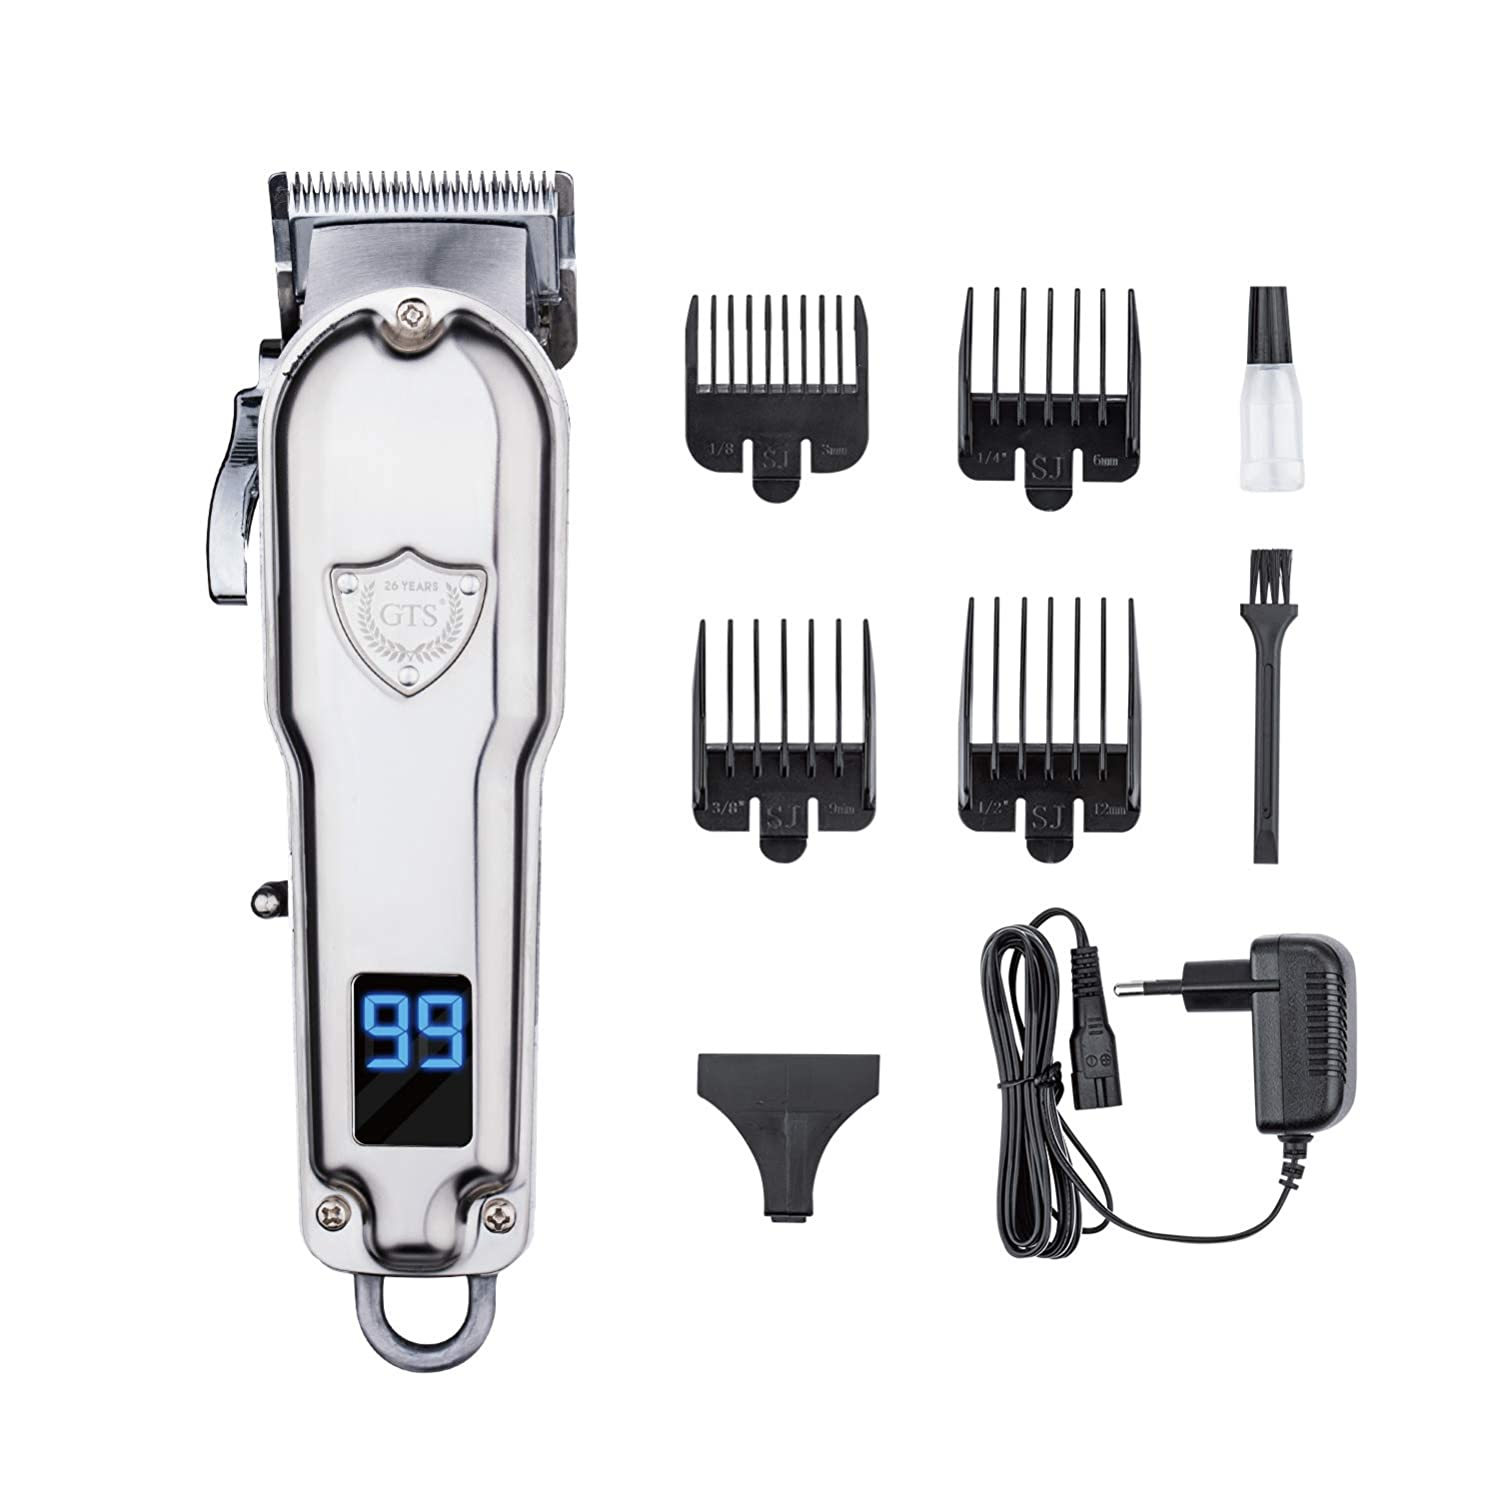 Hair Clippers for Men, Cordless Hair Trimmer Rechargeable Barber Clippers, Professional Hair Cutting Kit for Home Barber Salon(Silver)